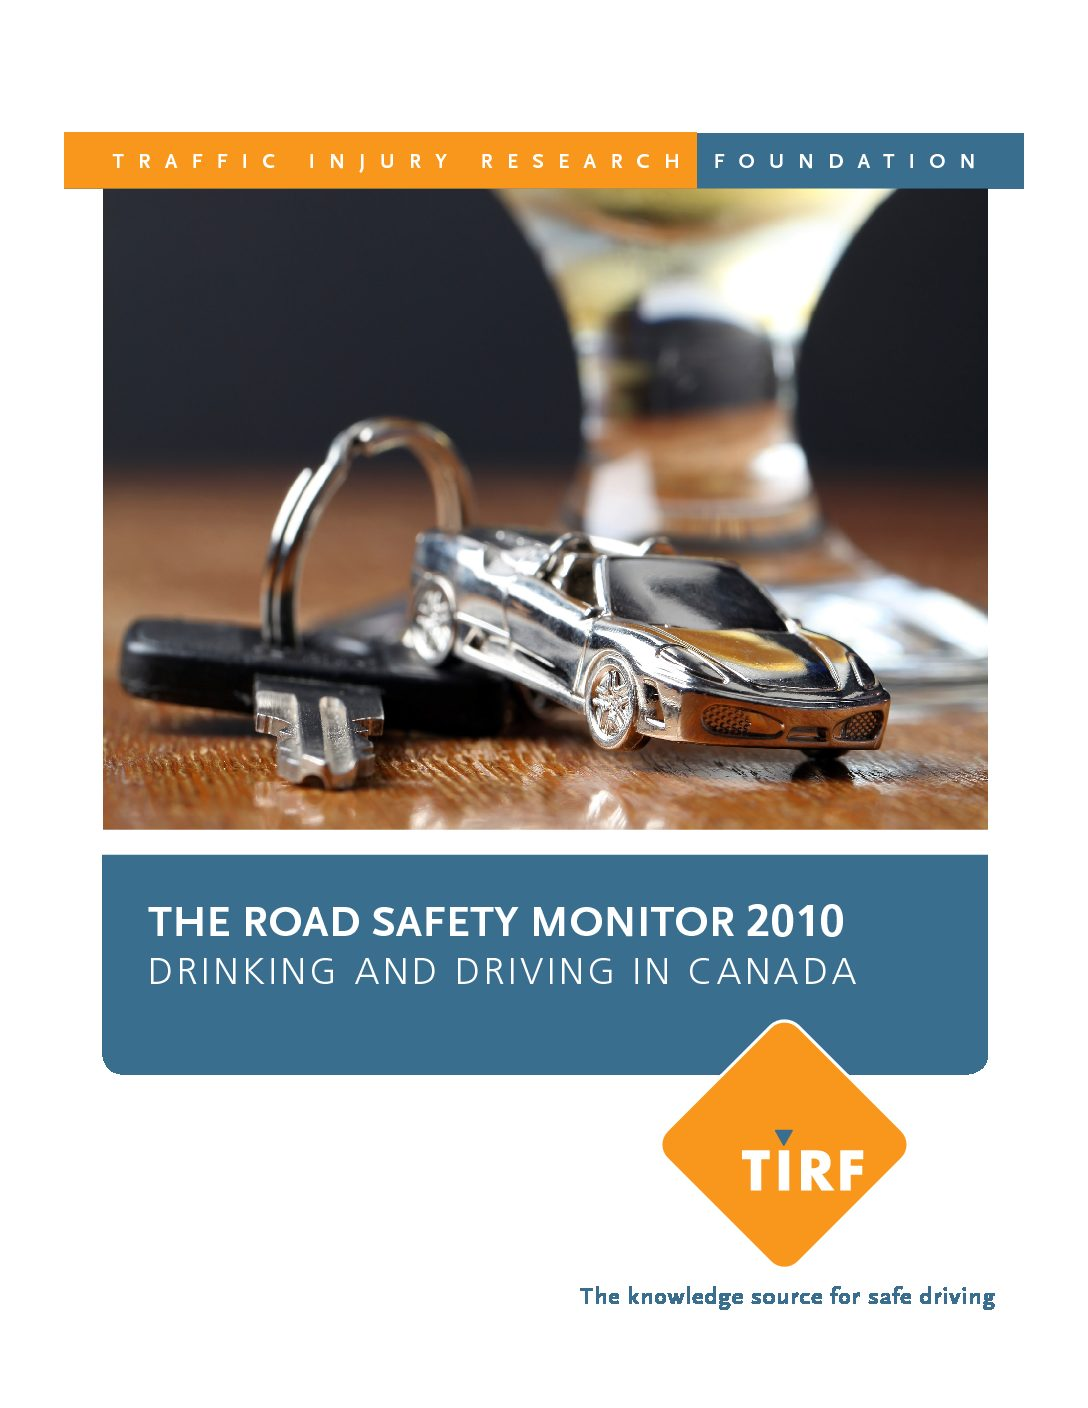 Road Safety Monitor 2010: Drinking and Driving in Canada